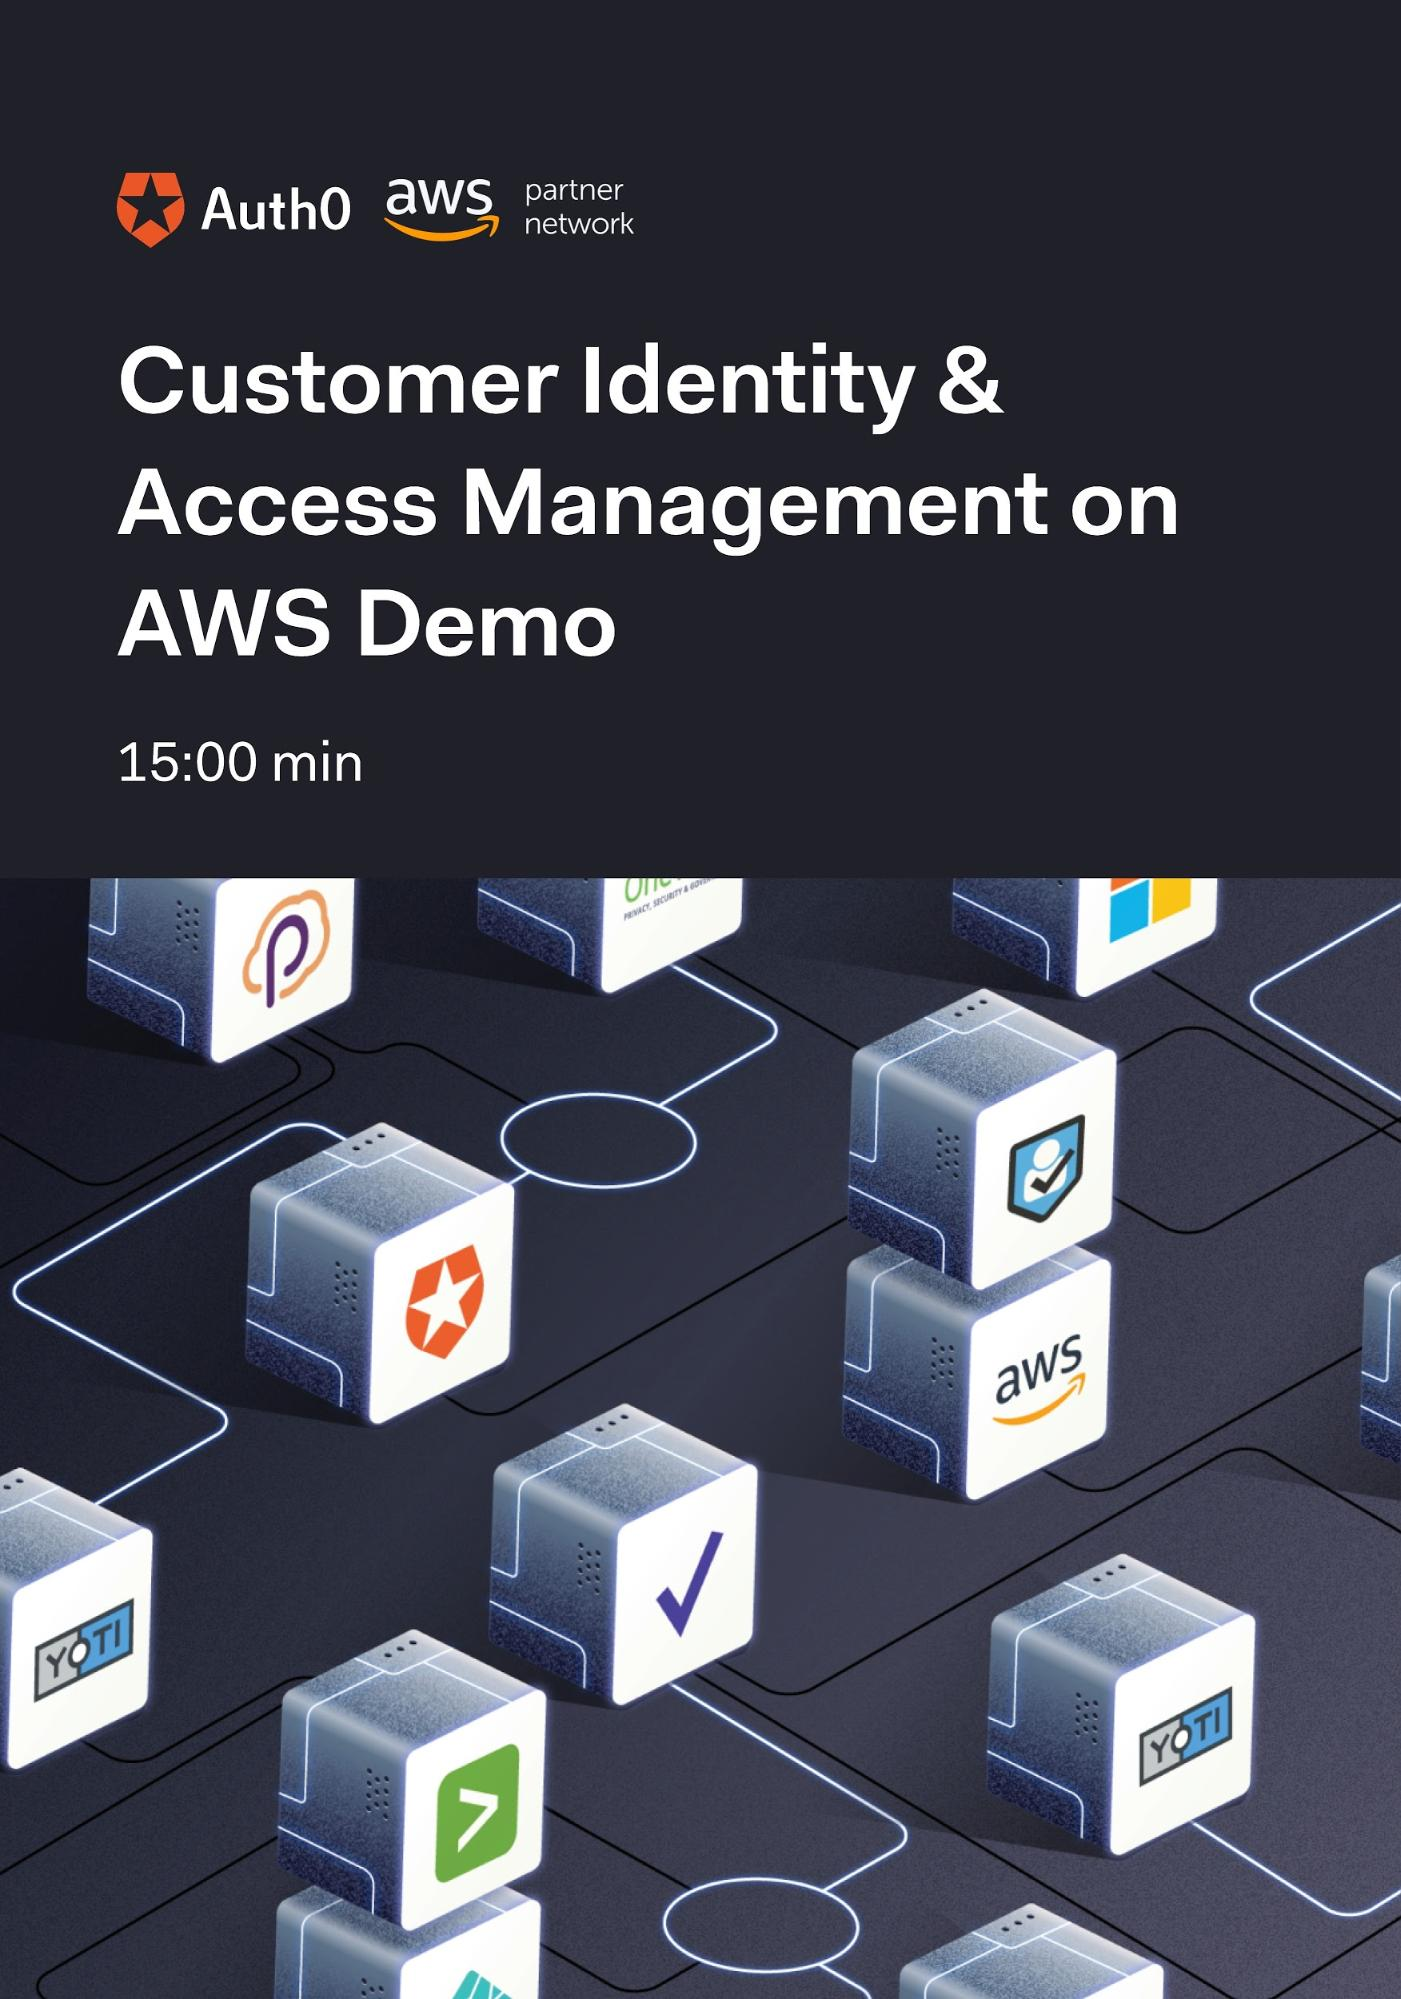 Auth0 Customer Identity and Access Management (CIAM) on AWS Demo Video